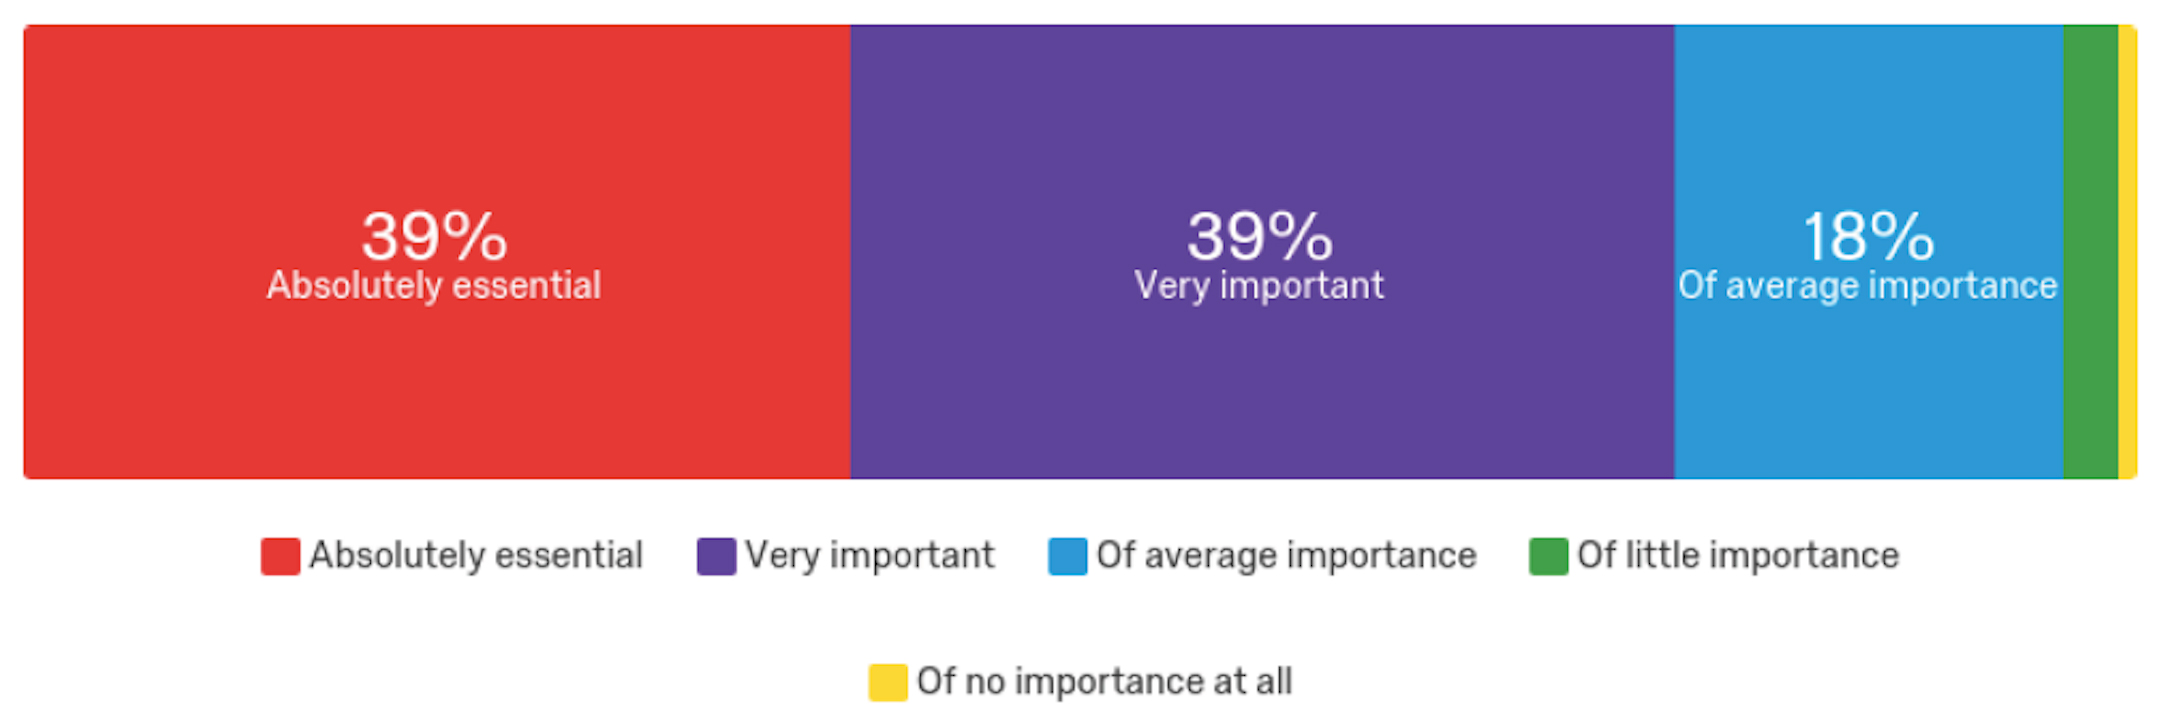 39% Absolutely essential, 39% Very important, 18% Average importance, 3% Little importance, 1% No importance